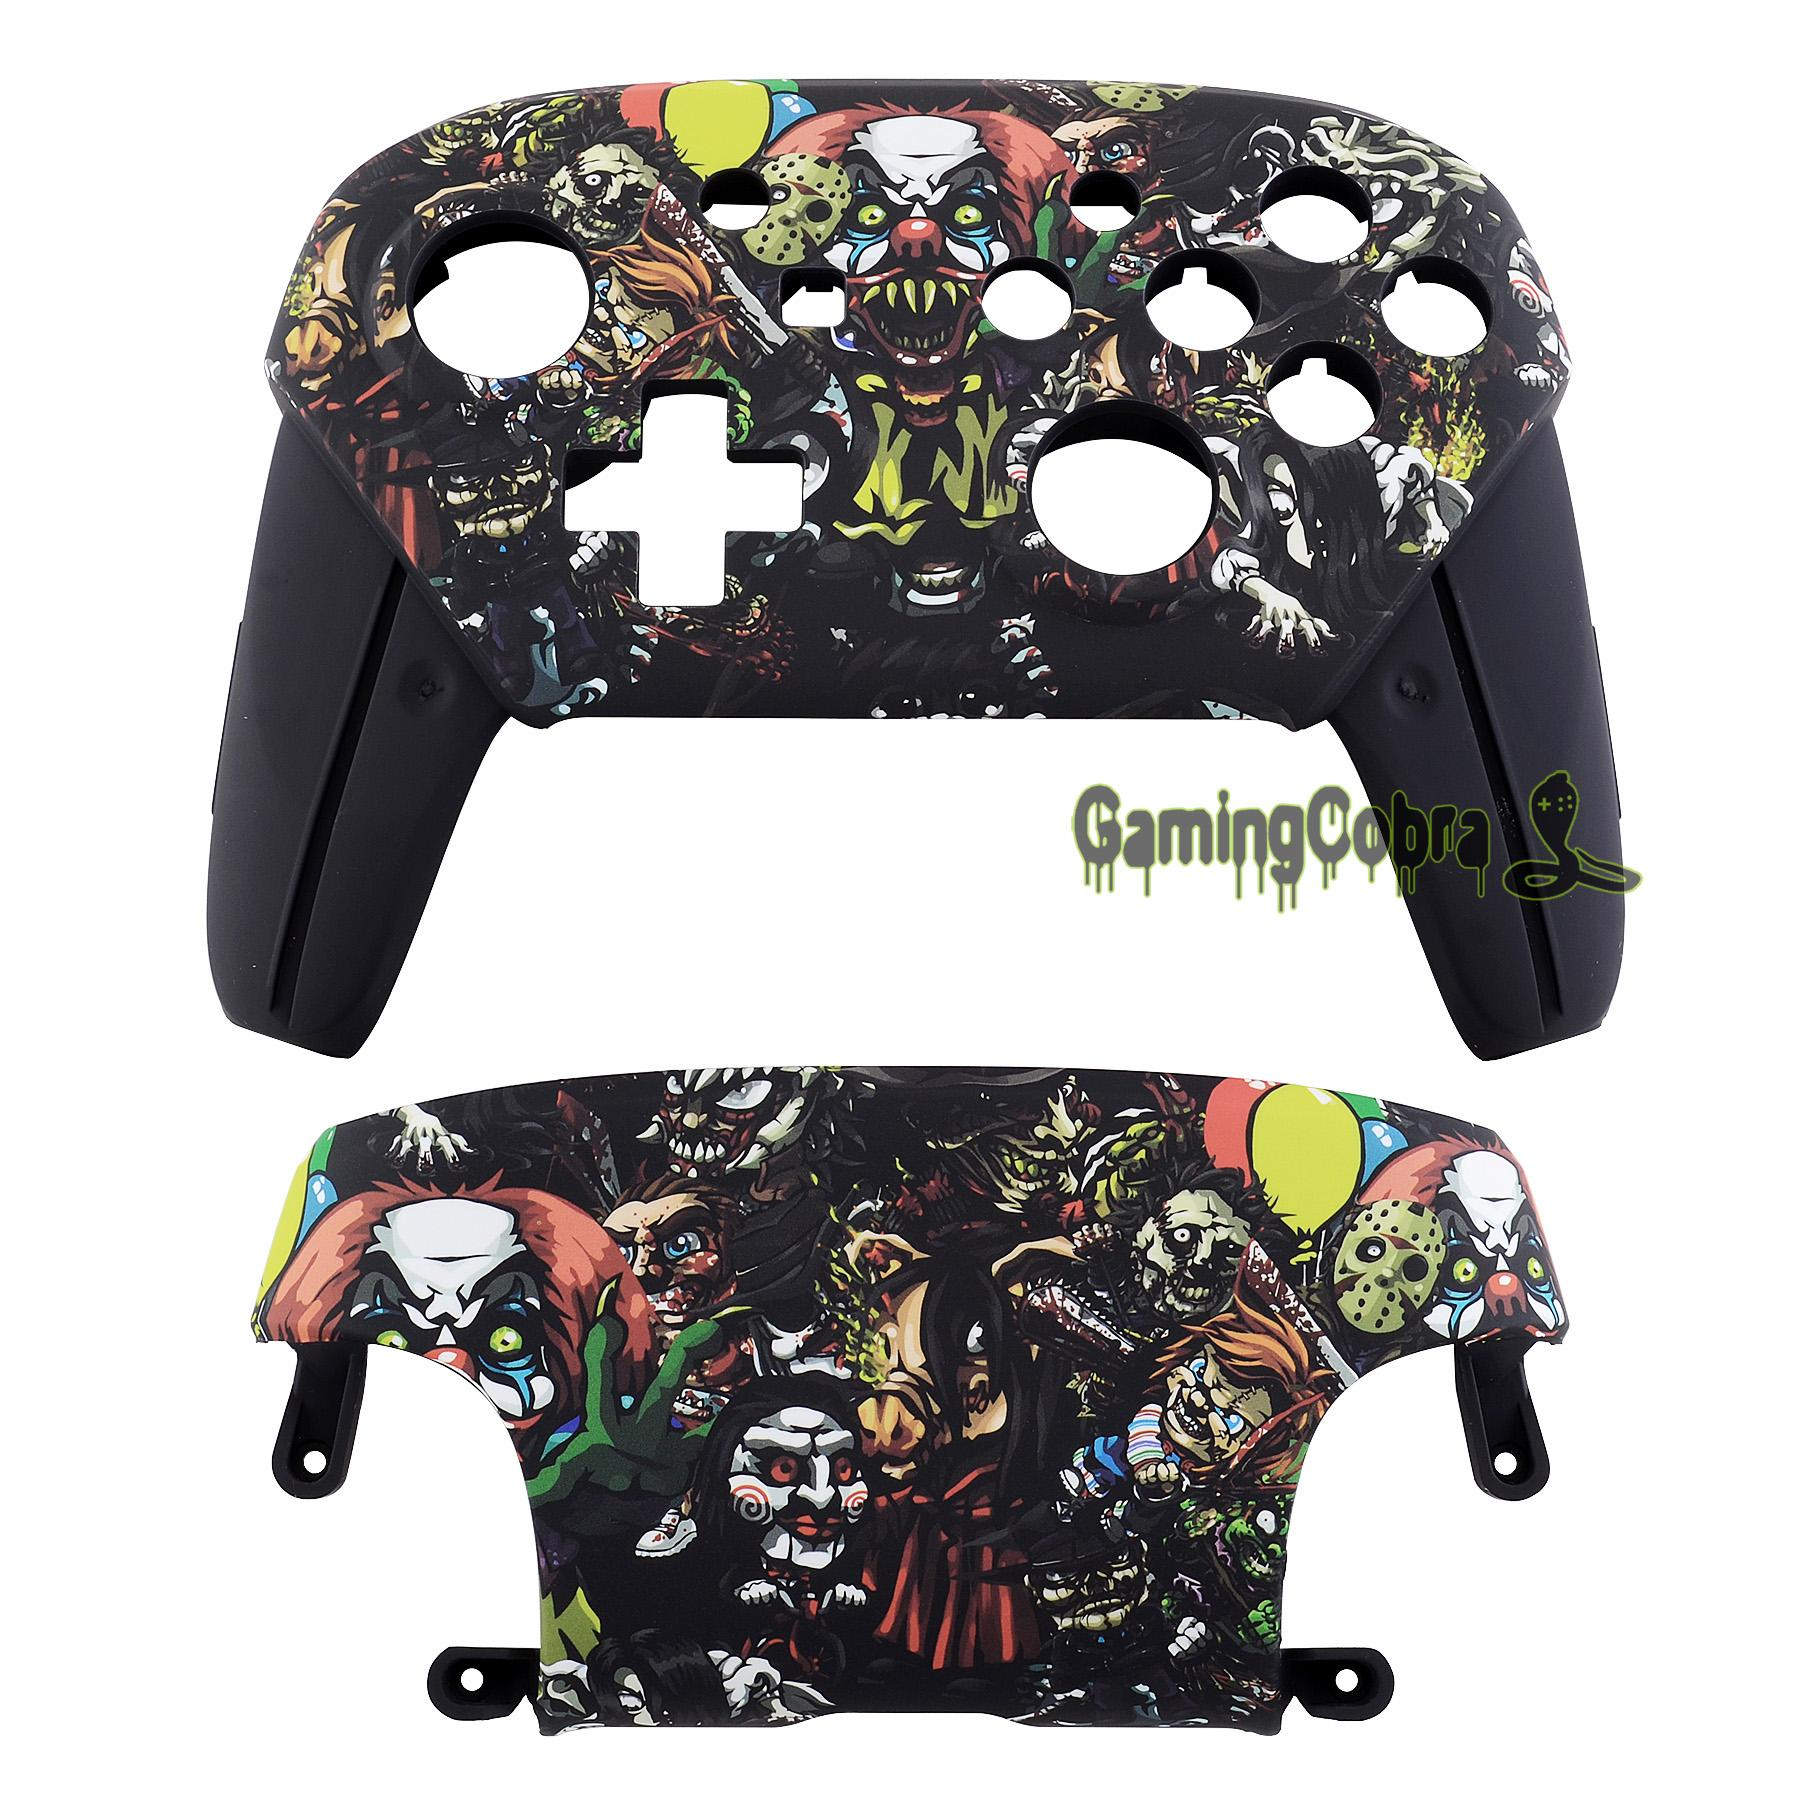 Effrayant Party Patterned Soft Touch et Faceplate Backplate Shell de remplacement Coque Cover NS Changer Pro Controller